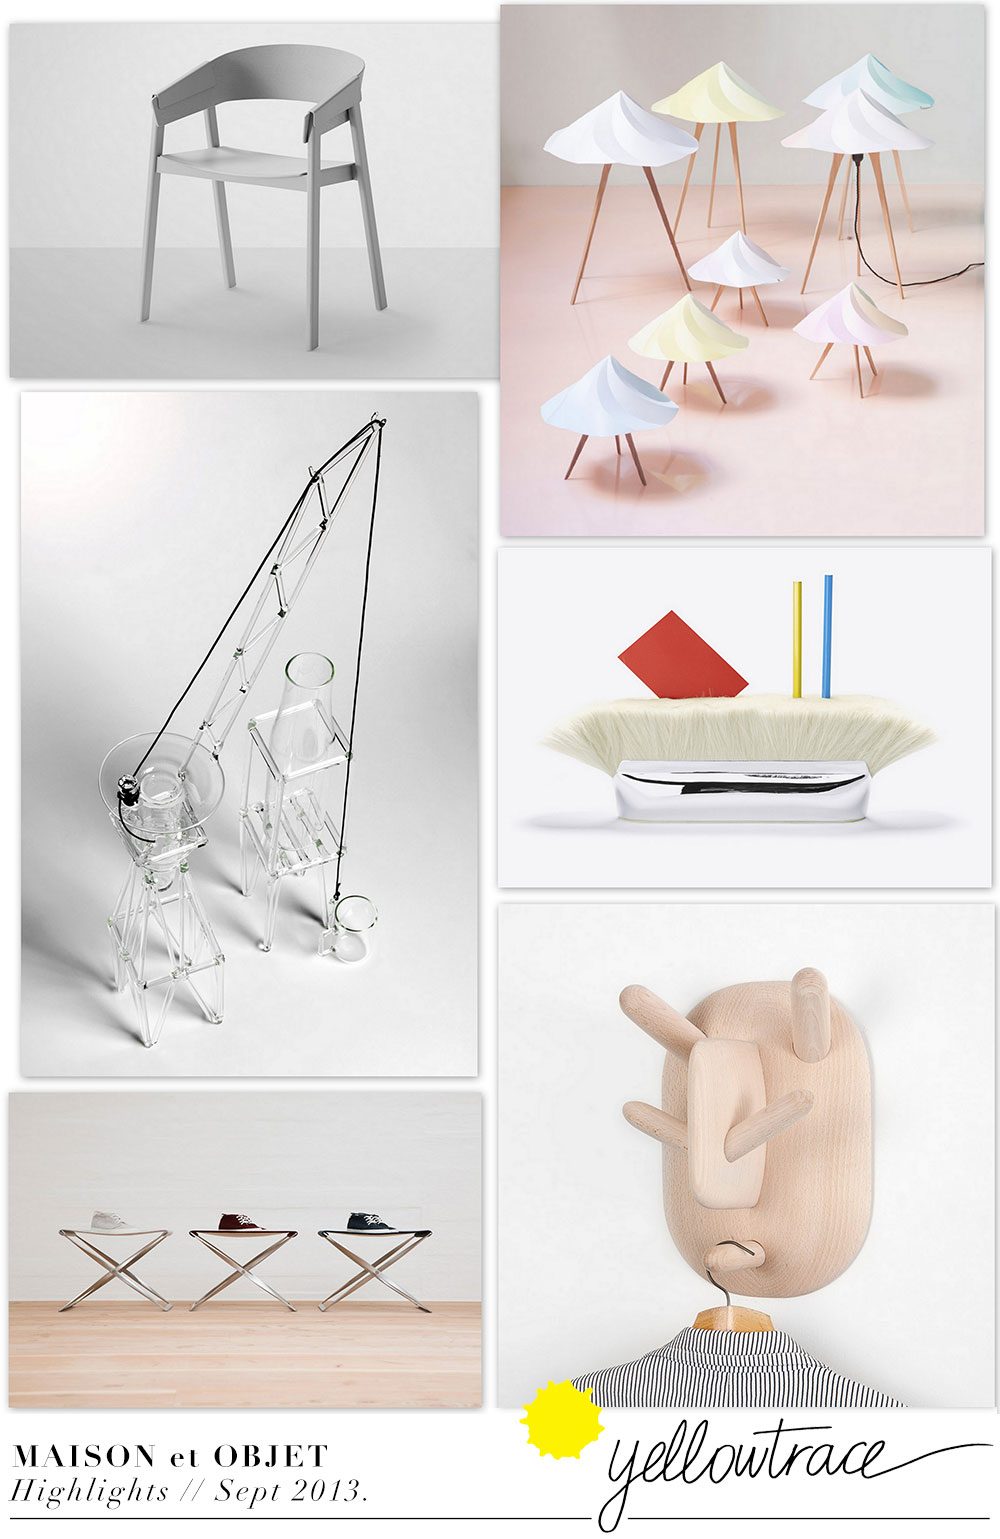 Maison et Objet 2013 Highlights by Yellowtrace.